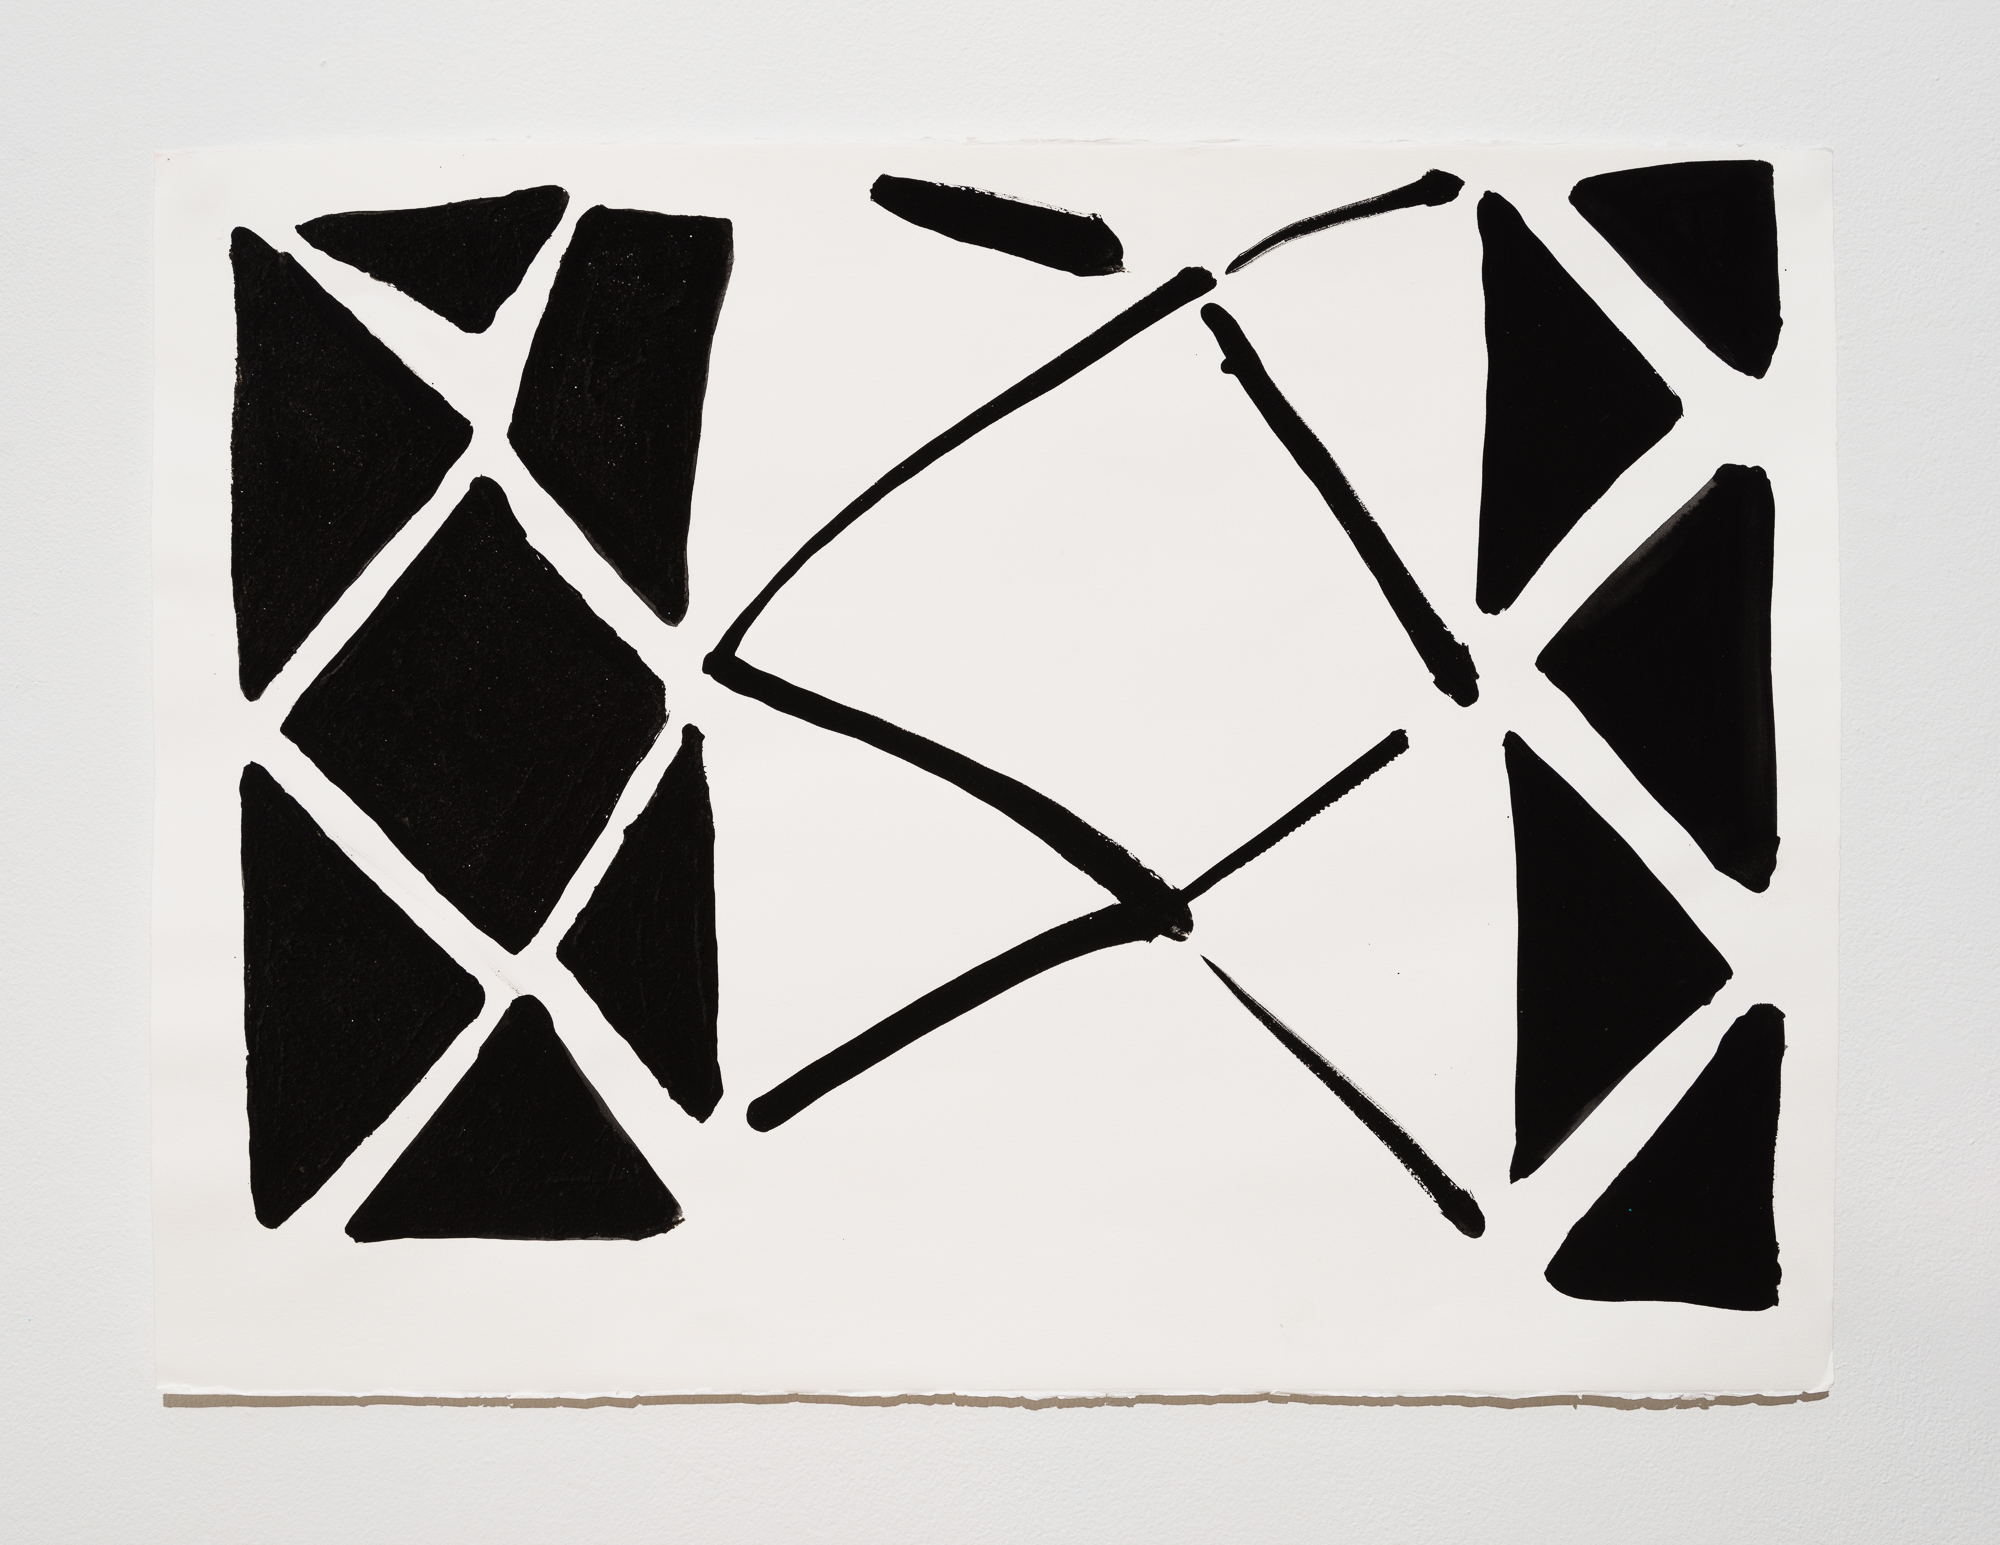 """Judy Ledgerwood, """"Friends and Enemies #3,"""" 2003, Water based media on paper, 22.5 x 30 inches"""